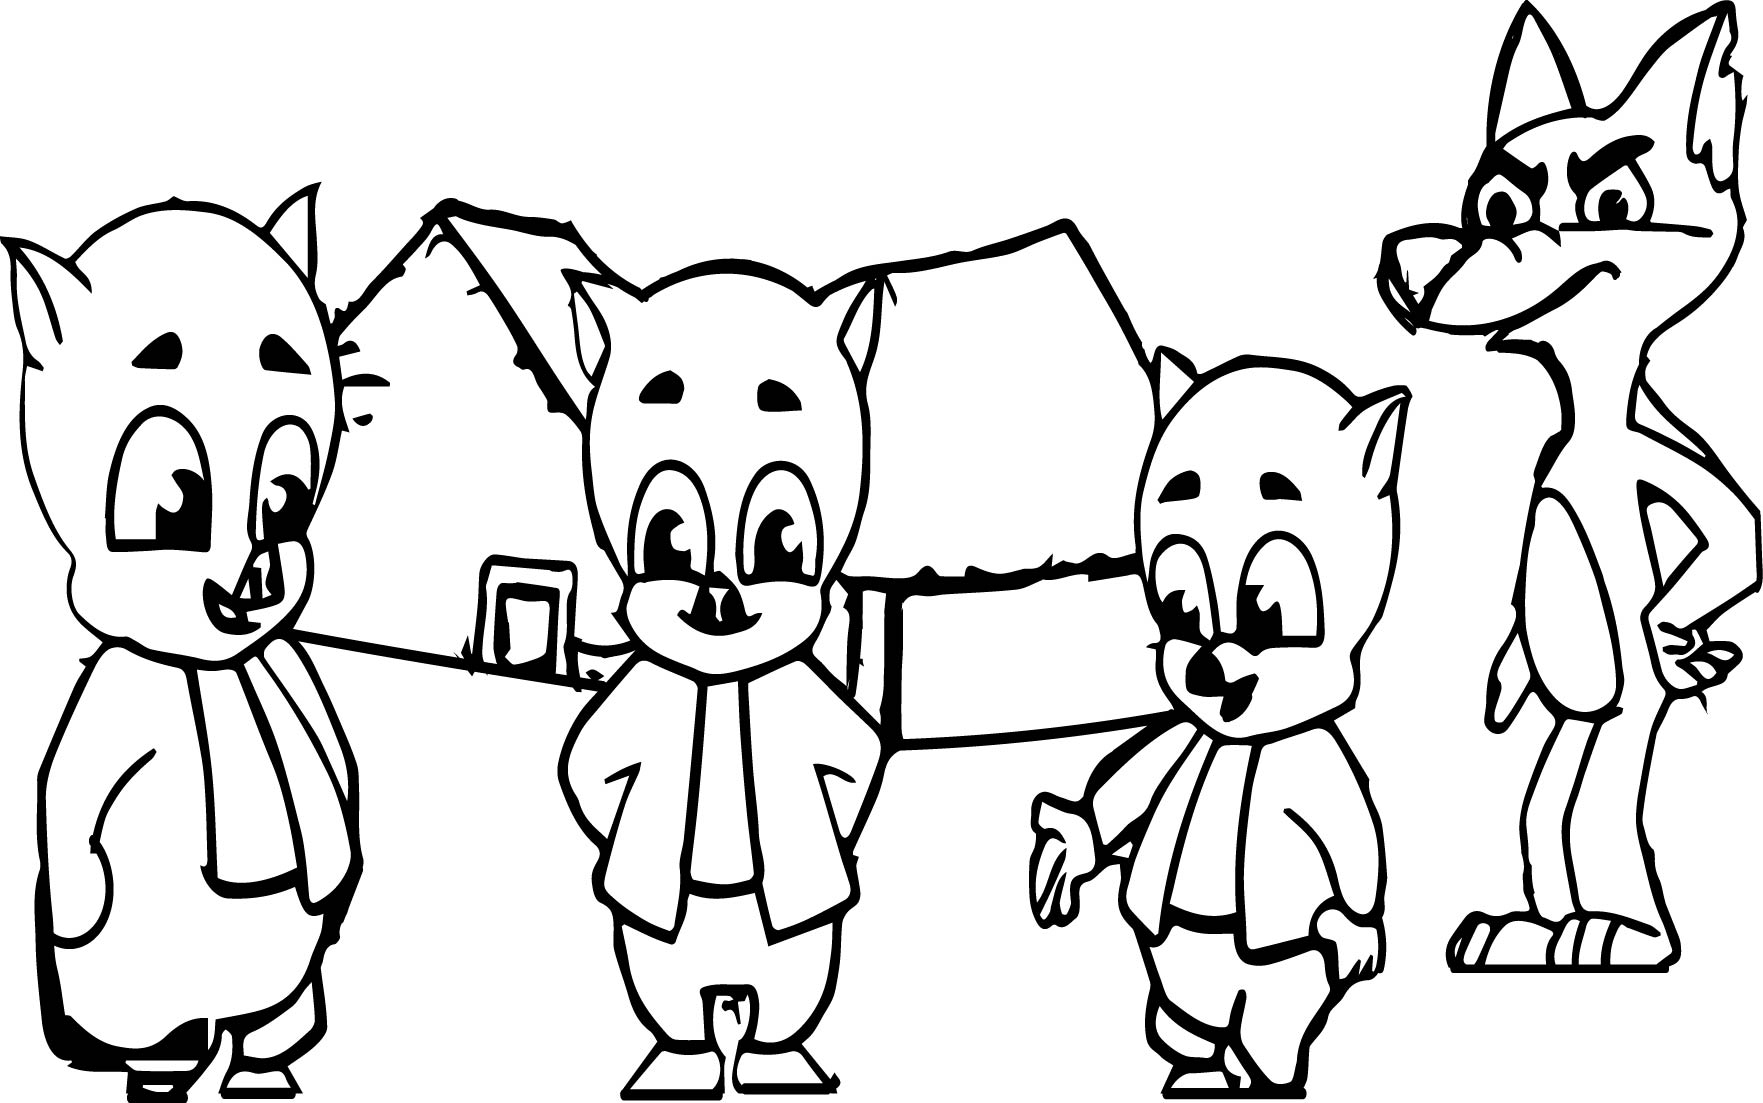 Coloring pages 3 little pigs - 3 Little Pigs And The Big Bad Wolf Coloring Page